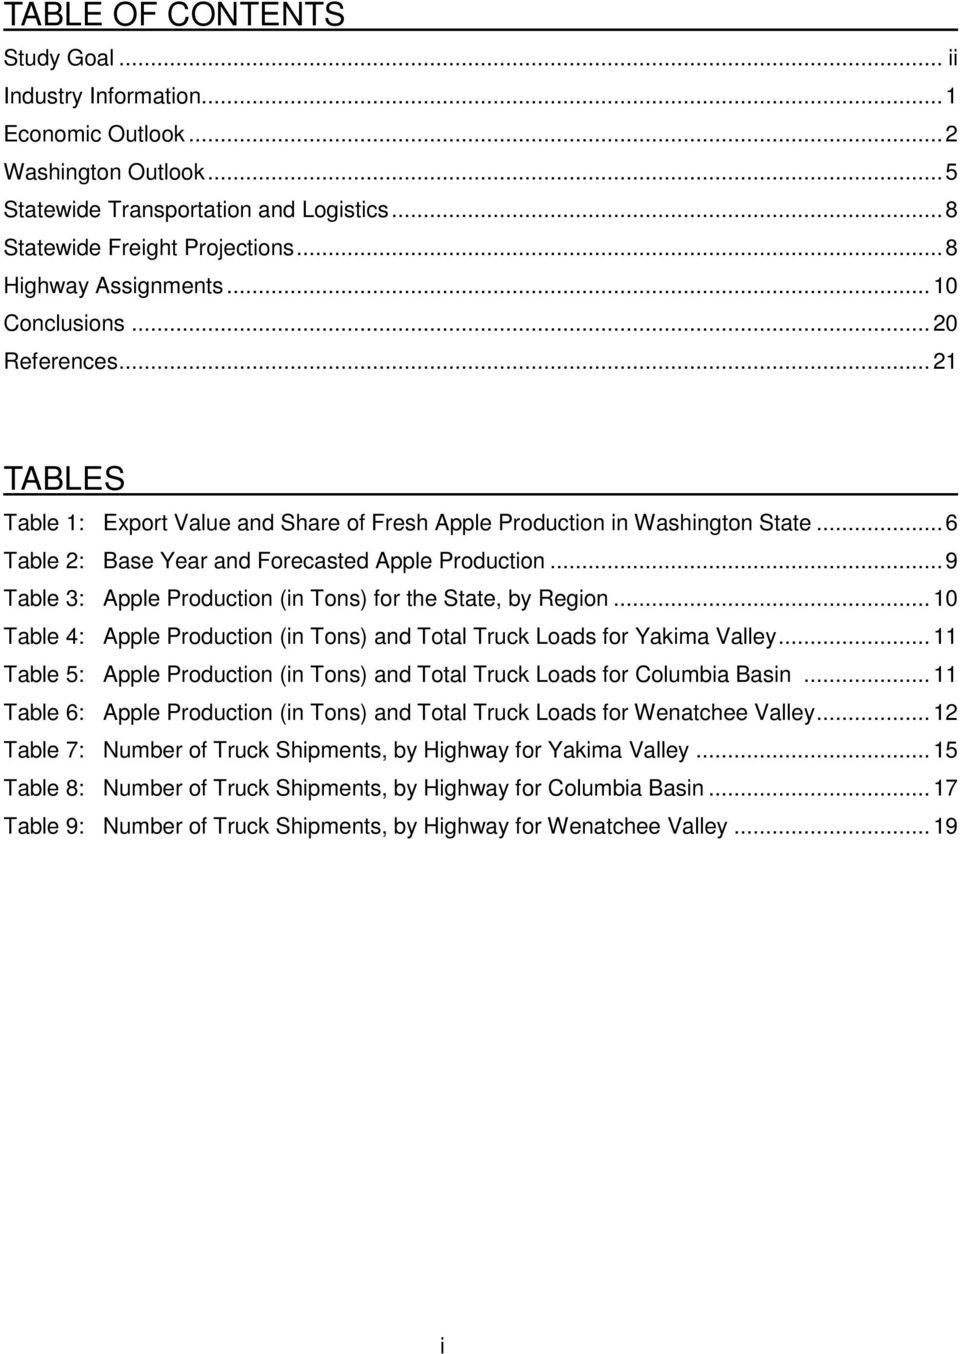 ..9 Table 3: Apple Production (in Tons) for the State, by Region...10 Table 4: Apple Production (in Tons) and Total Truck Loads for Yakima Valley.